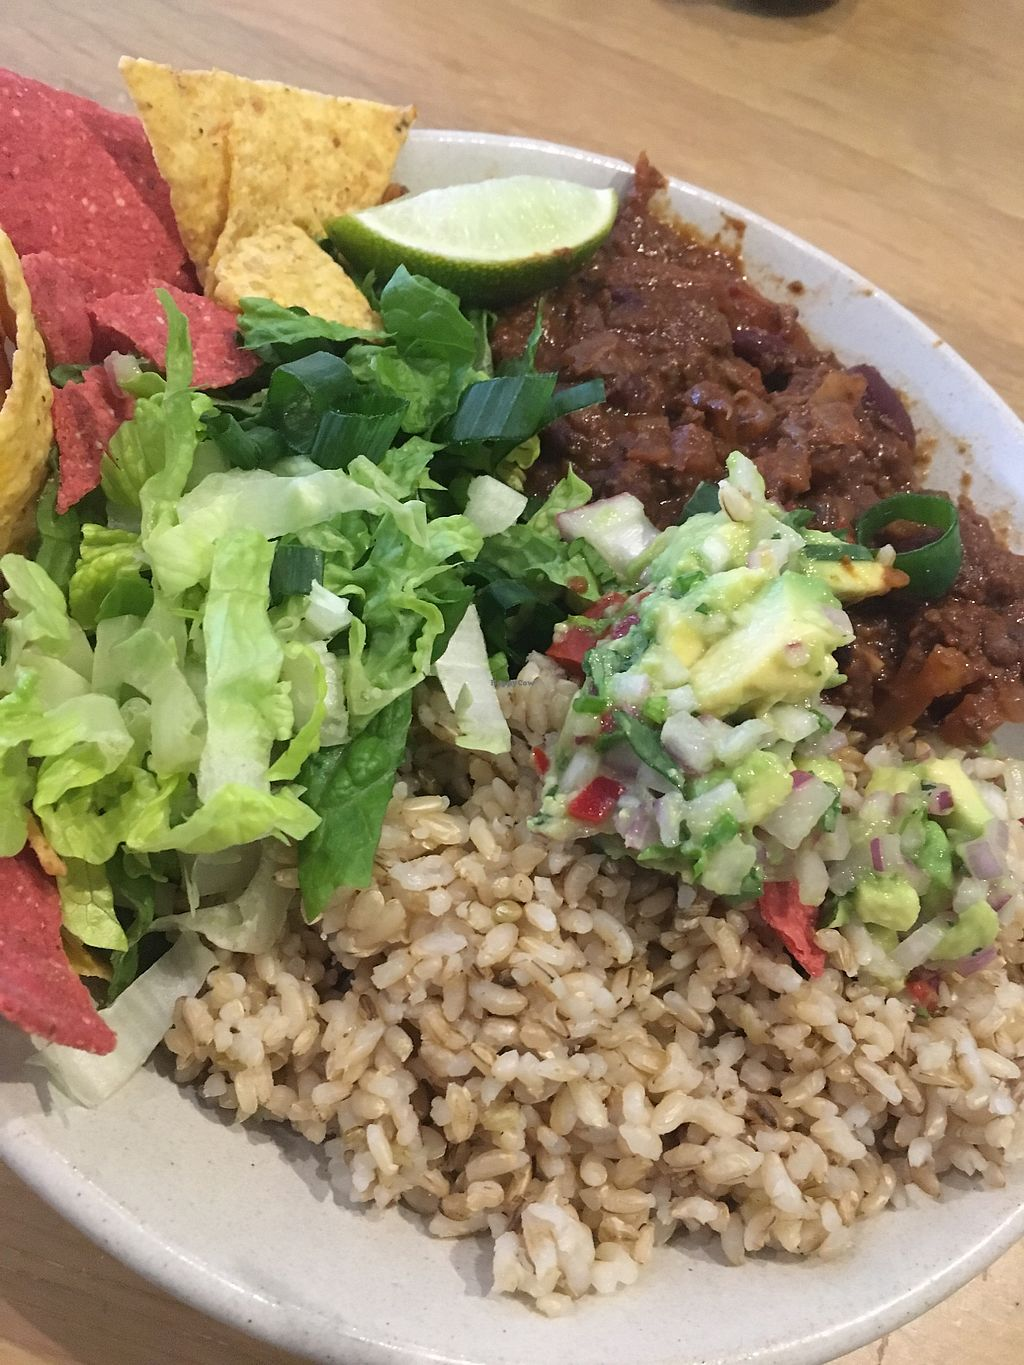 """Photo of Sprout Wholefood Cafe and Grocer  by <a href=""""/members/profile/Jennydegio"""">Jennydegio</a> <br/>Mexi bowl vegan option <br/> August 21, 2017  - <a href='/contact/abuse/image/66929/295402'>Report</a>"""